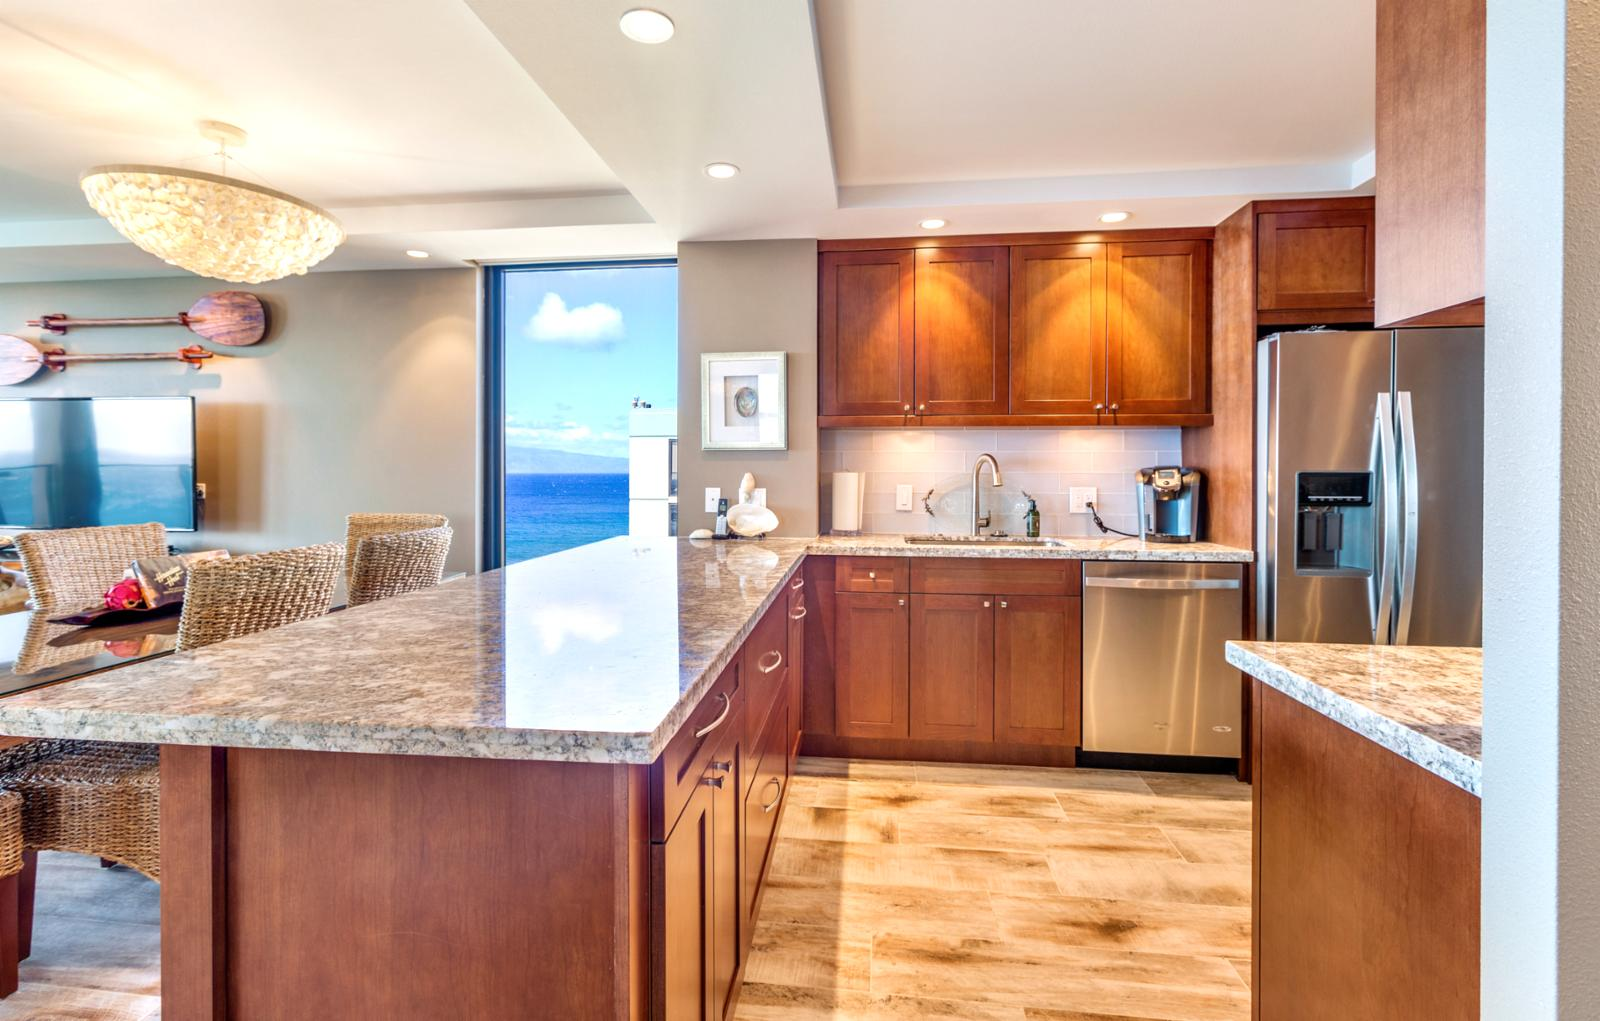 Kitchen view with stainless steel appliances